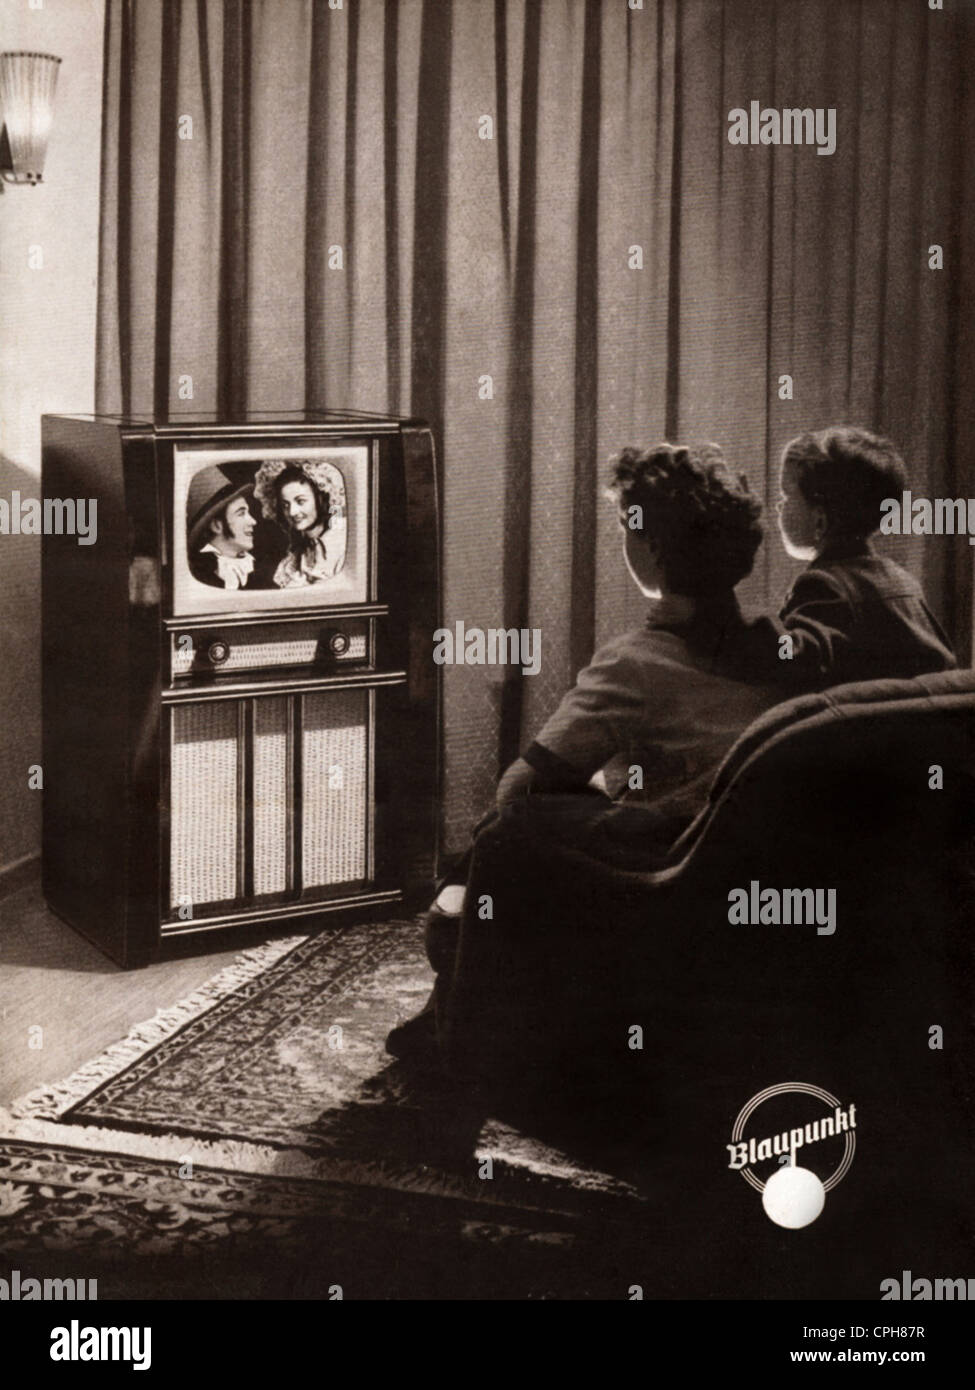 Tv Viewer 1950s Stock Photos & Tv Viewer 1950s Stock Images